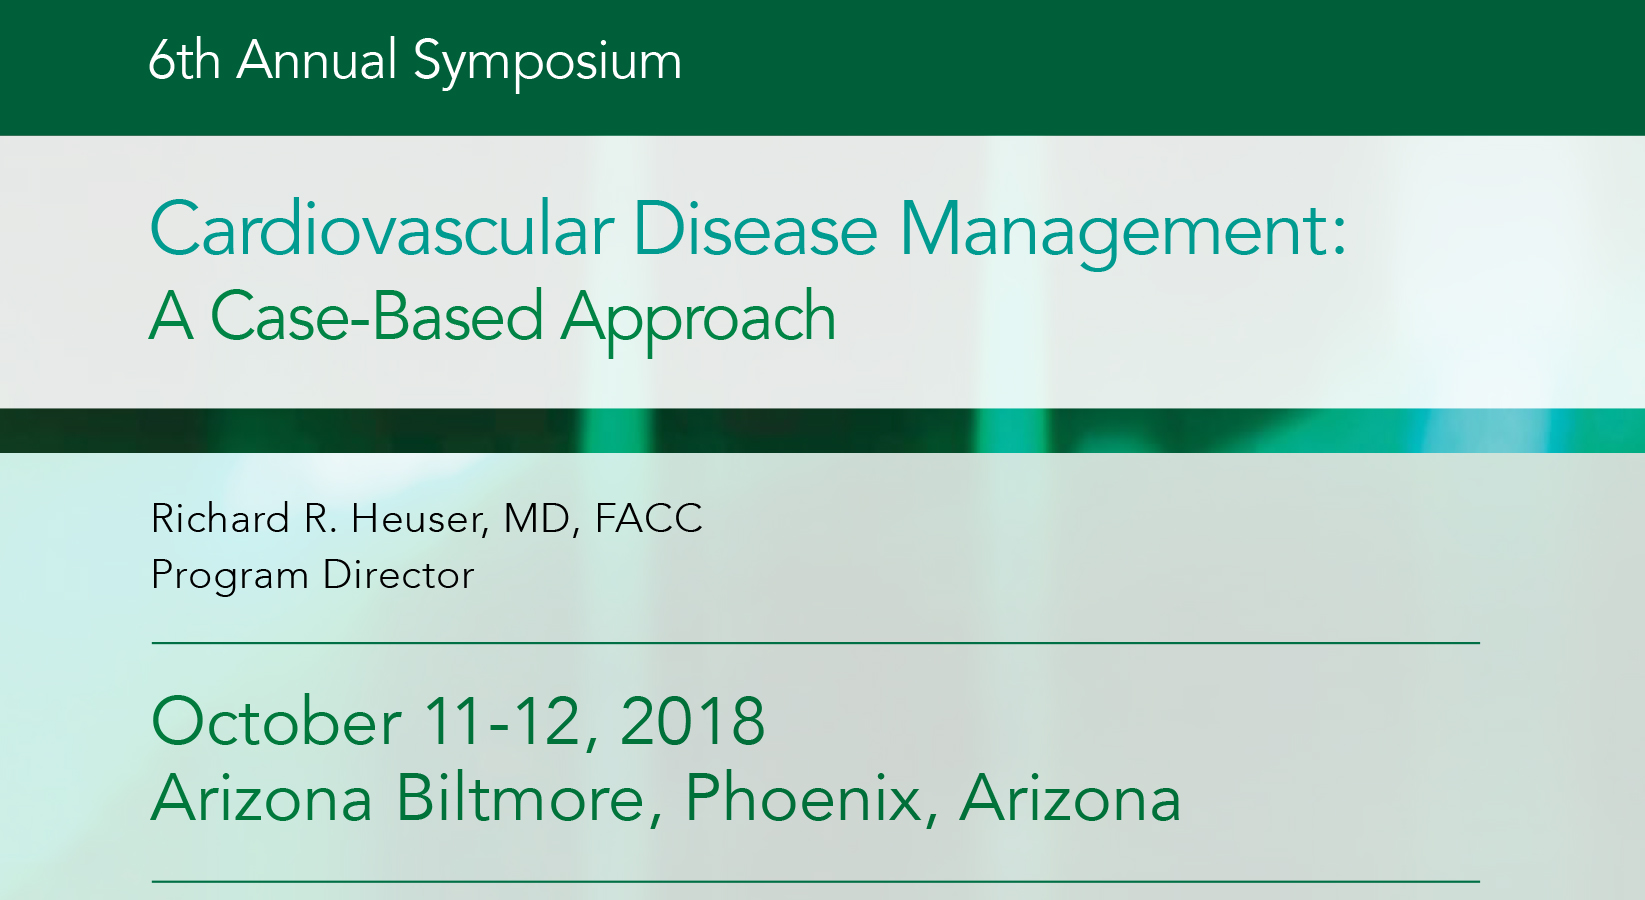 Cardiovascular Disease Management: A Case-Based Approach, 6th Annual Symposium